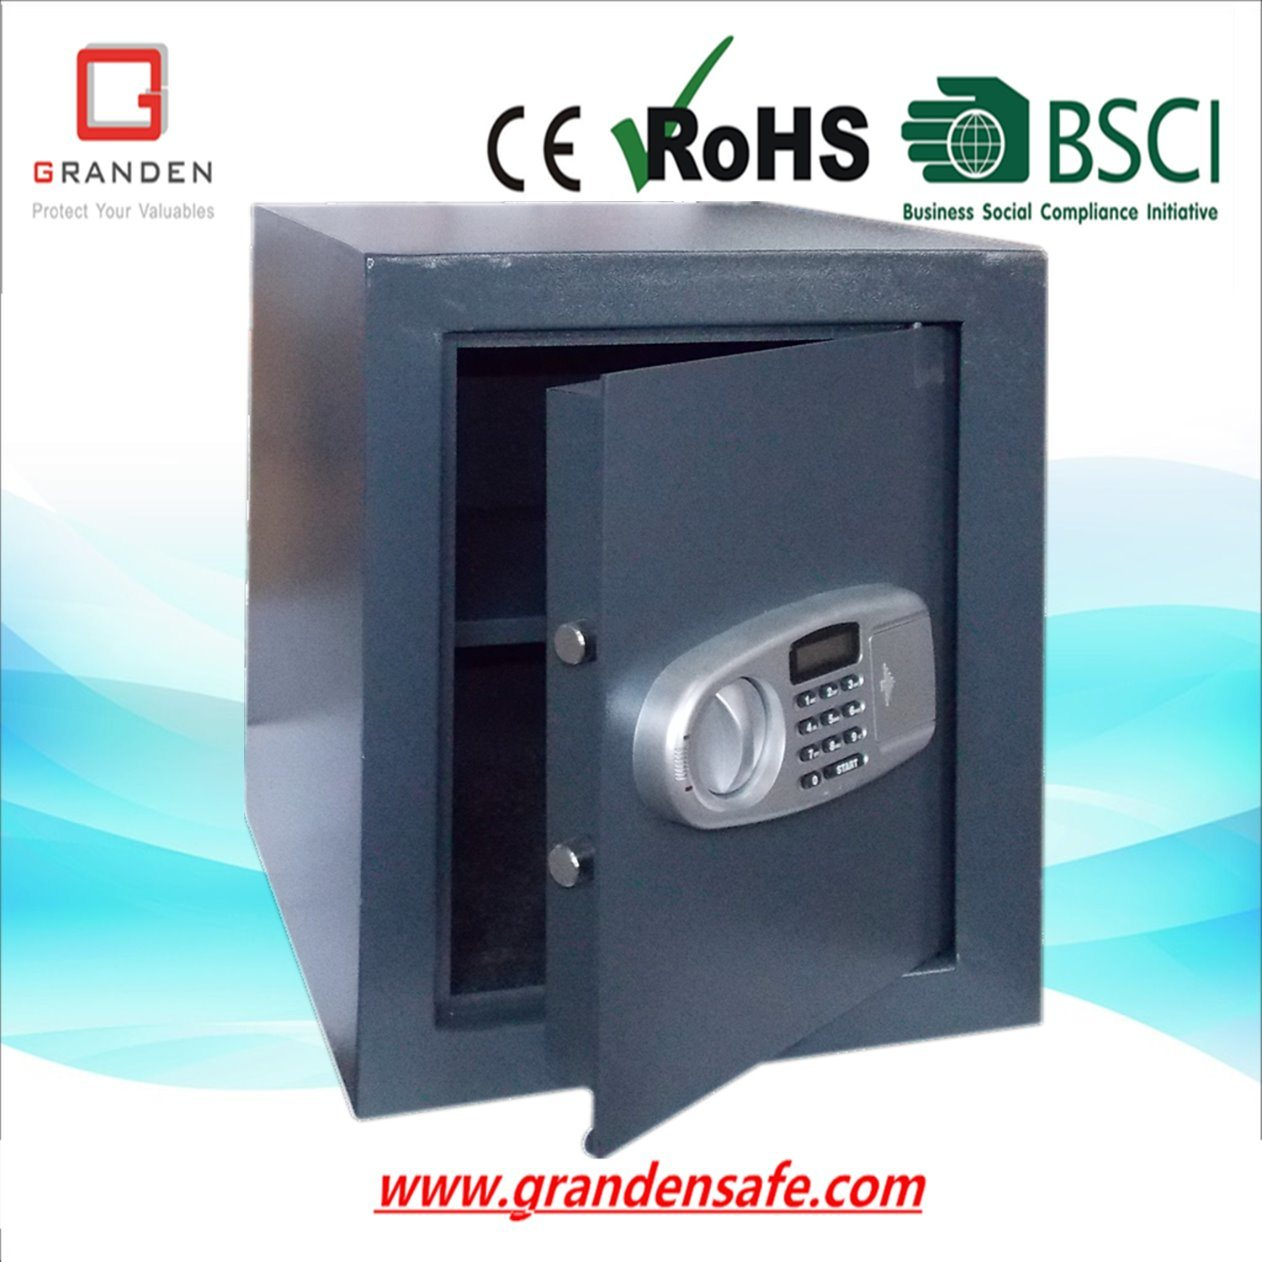 Fireproof Safe with LCD Display for Home and Office (FP-48EL) , Solid Steel